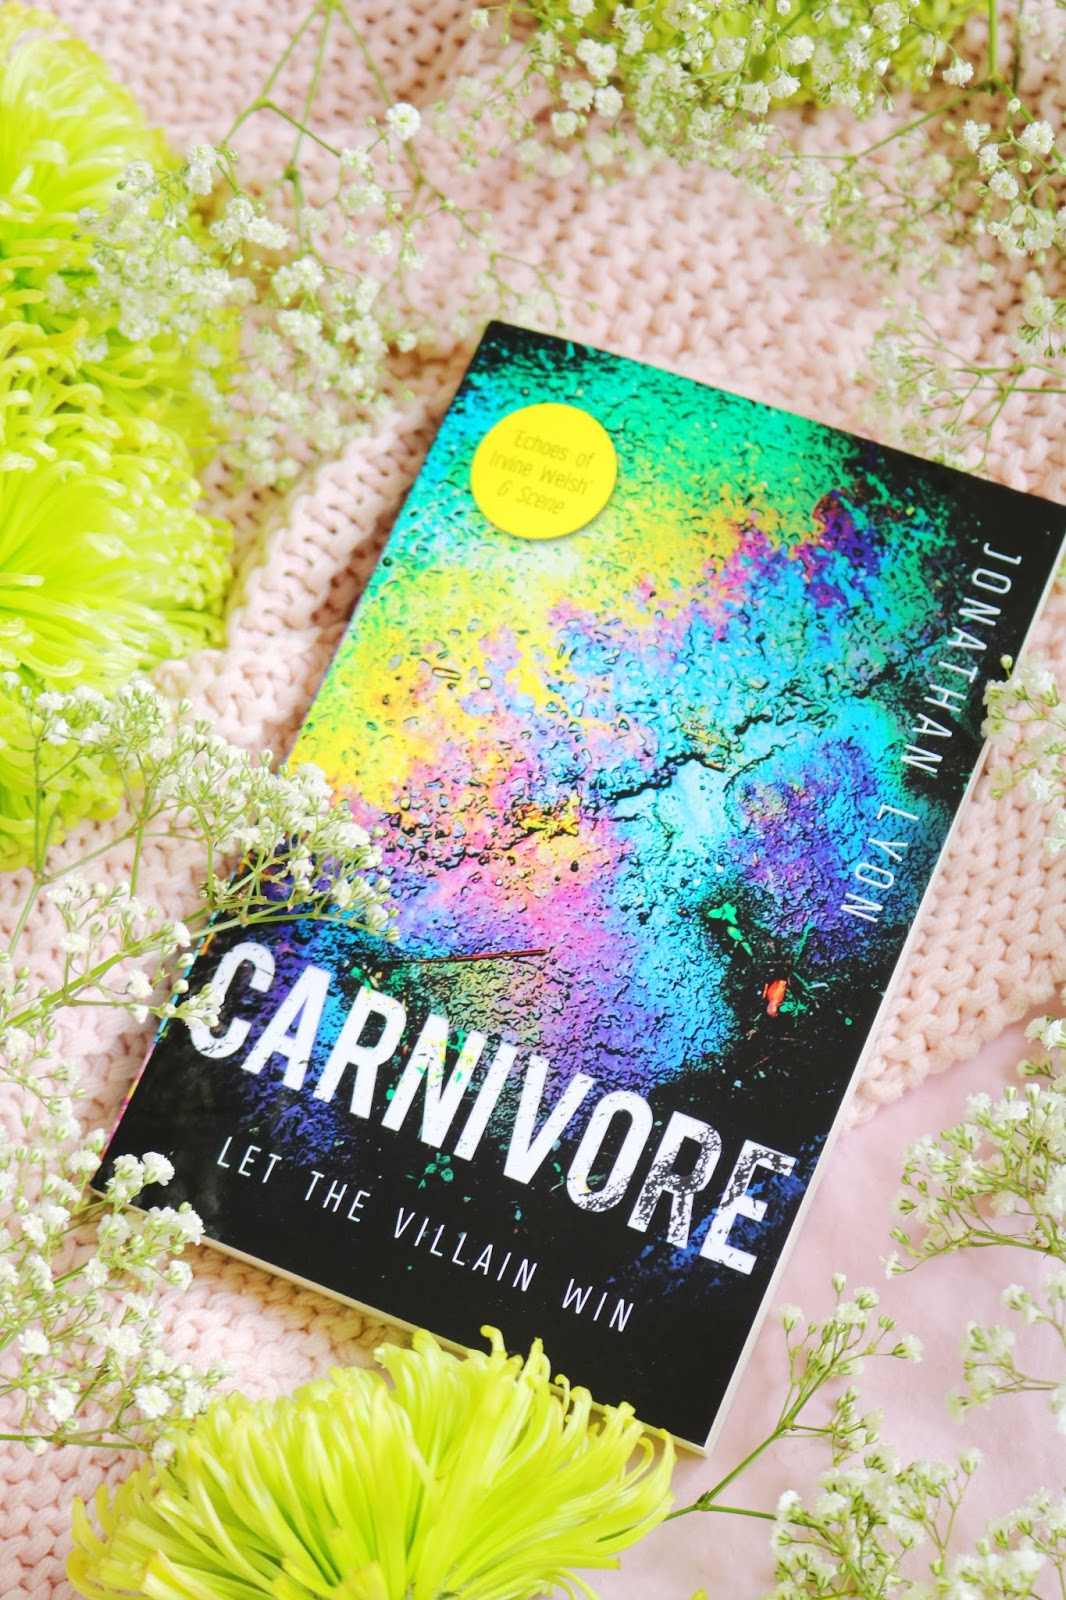 Blog Tour: Carnivore by Jonathan Lyon